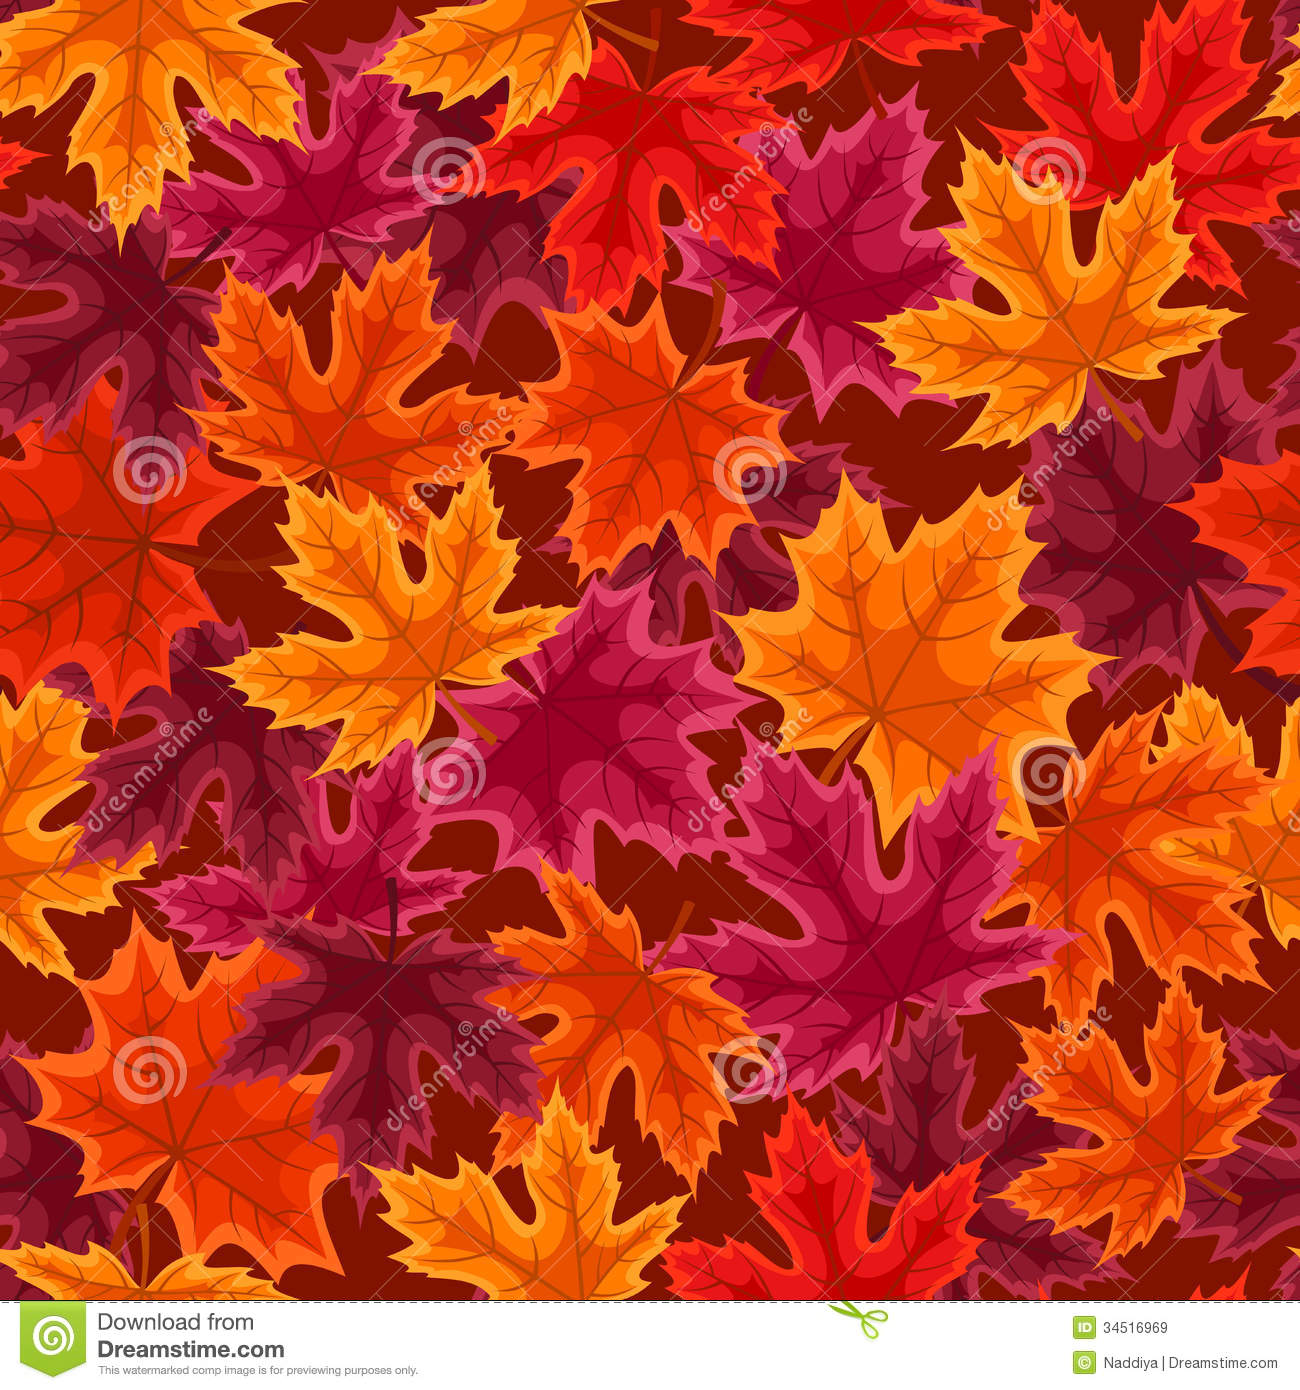 red leaves wallpaper pattern - photo #6